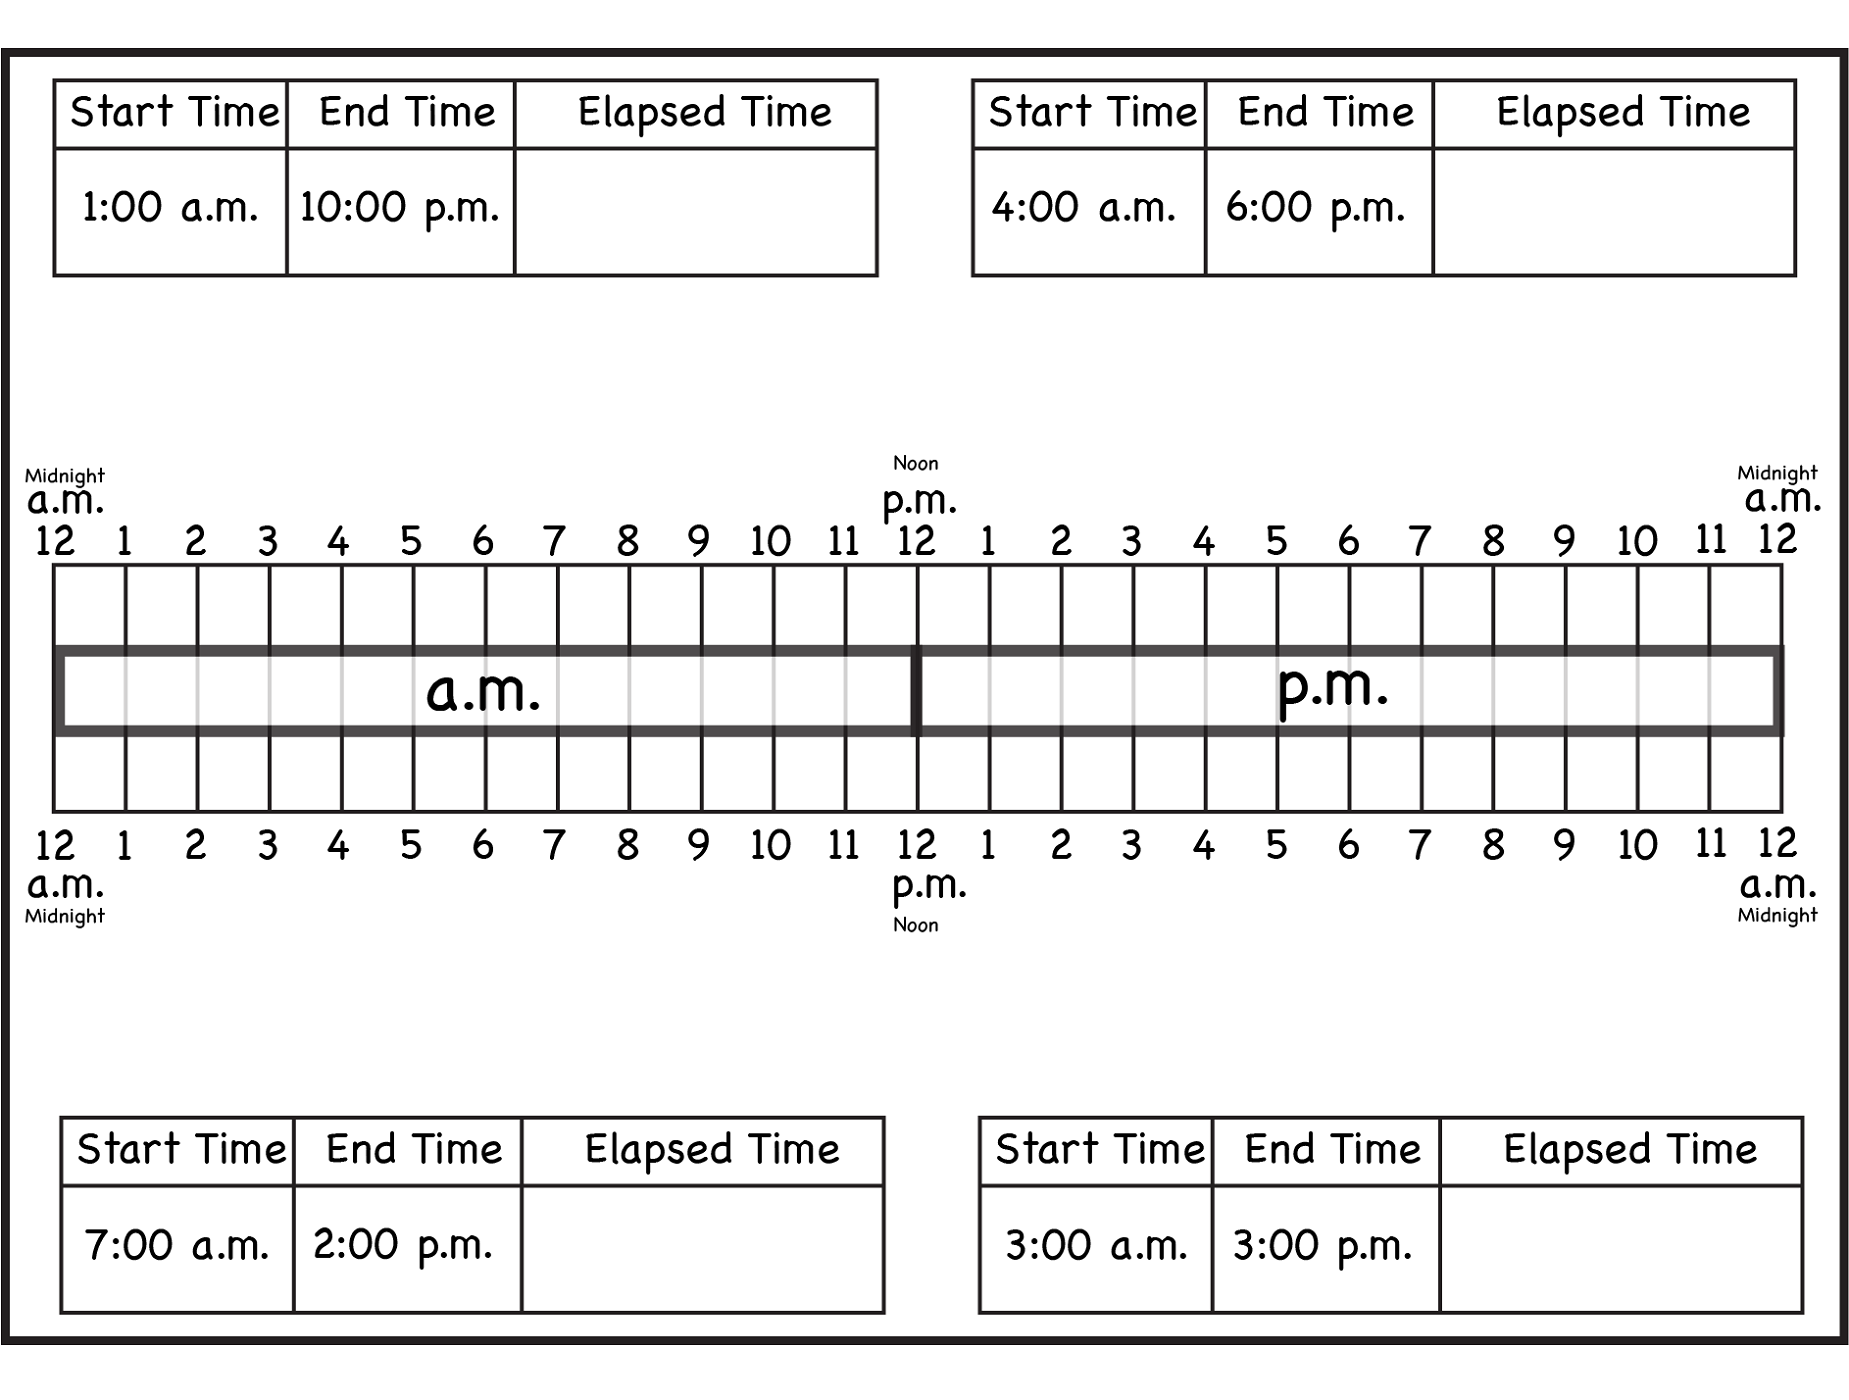 elapsed time rulers for school